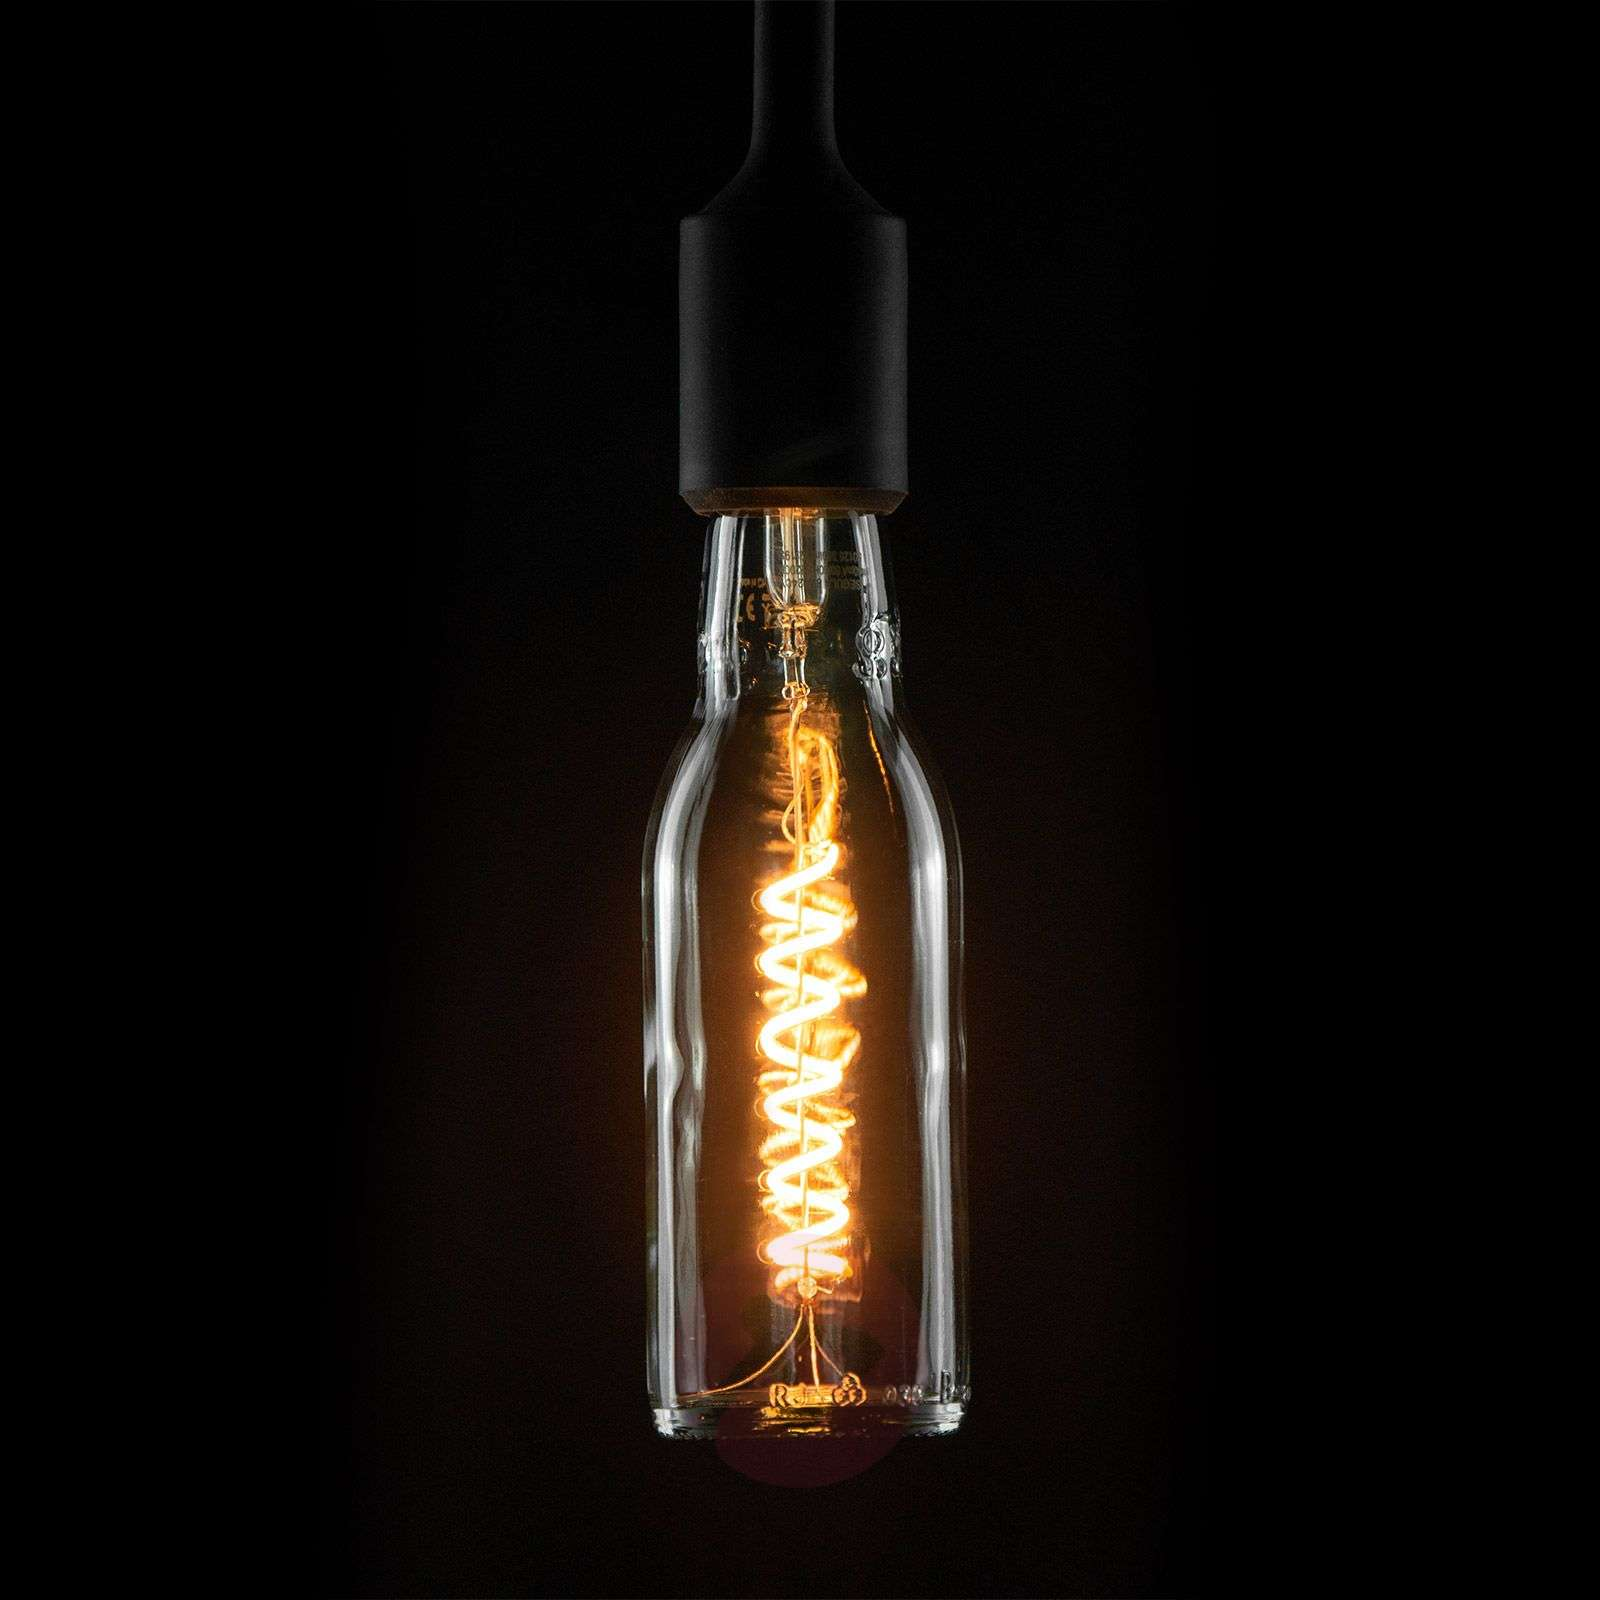 LED Beer Bulb E27 8 W blanc chaud transparent-8536233-01